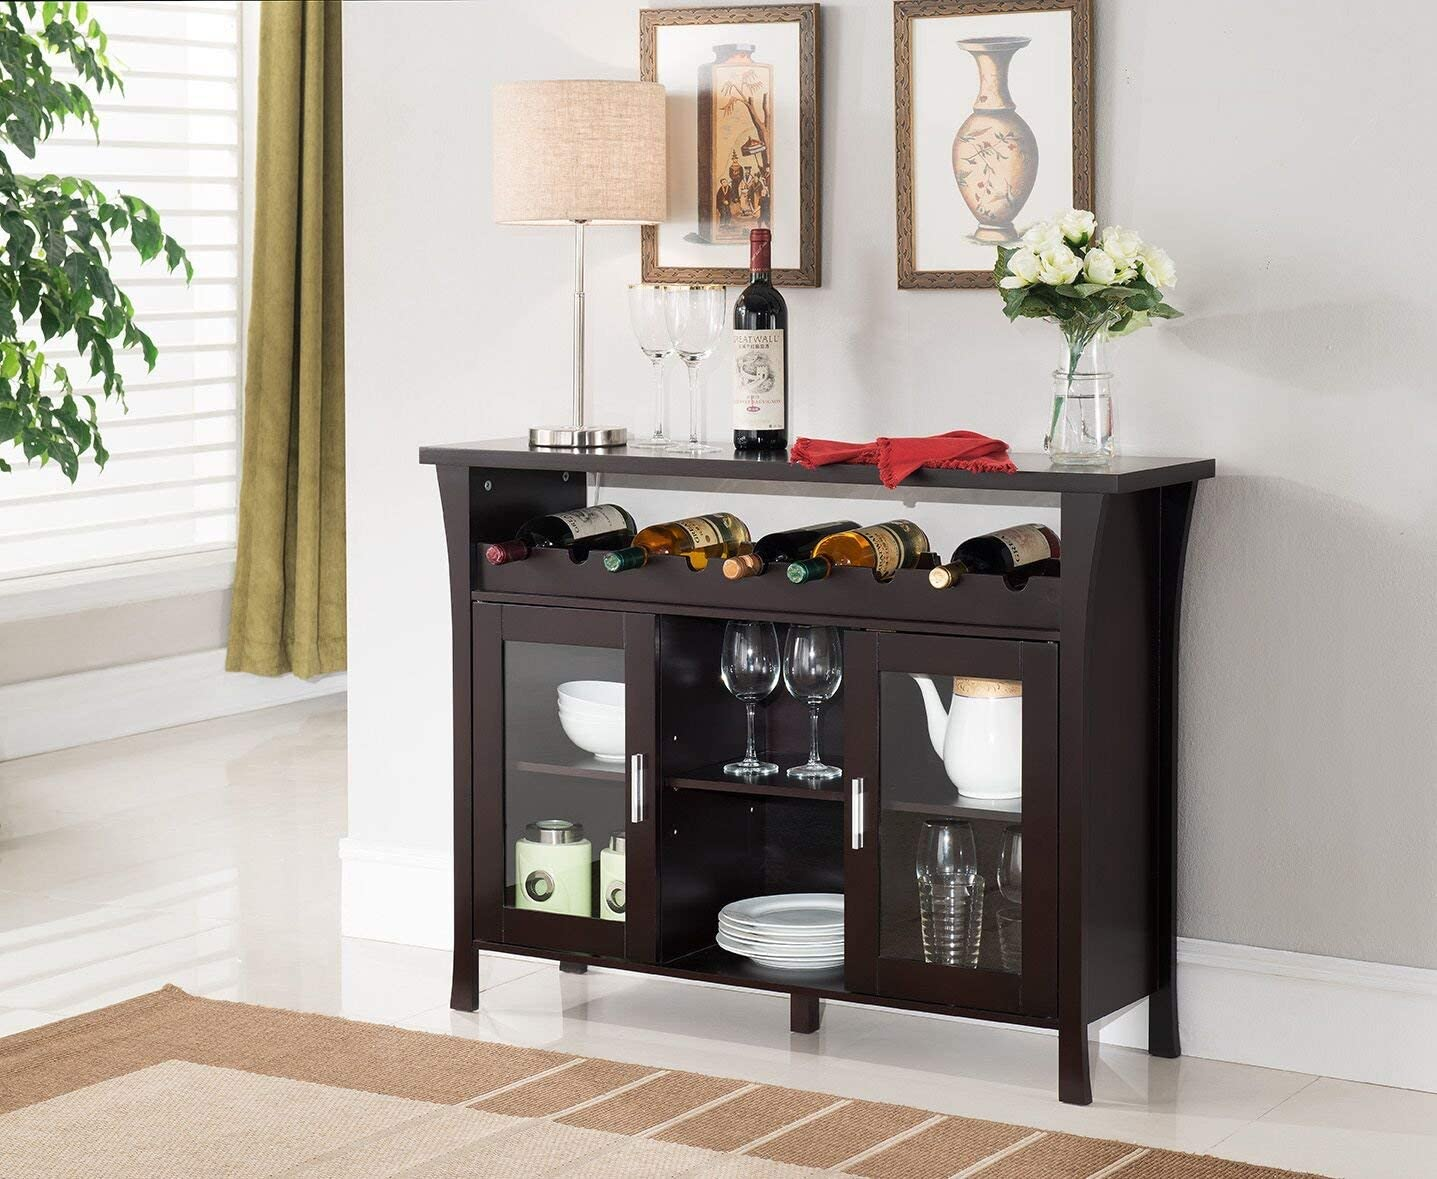 Kings Brand Furniture Wine Rack Buffet Server Console Table with Glass Doors, Espresso